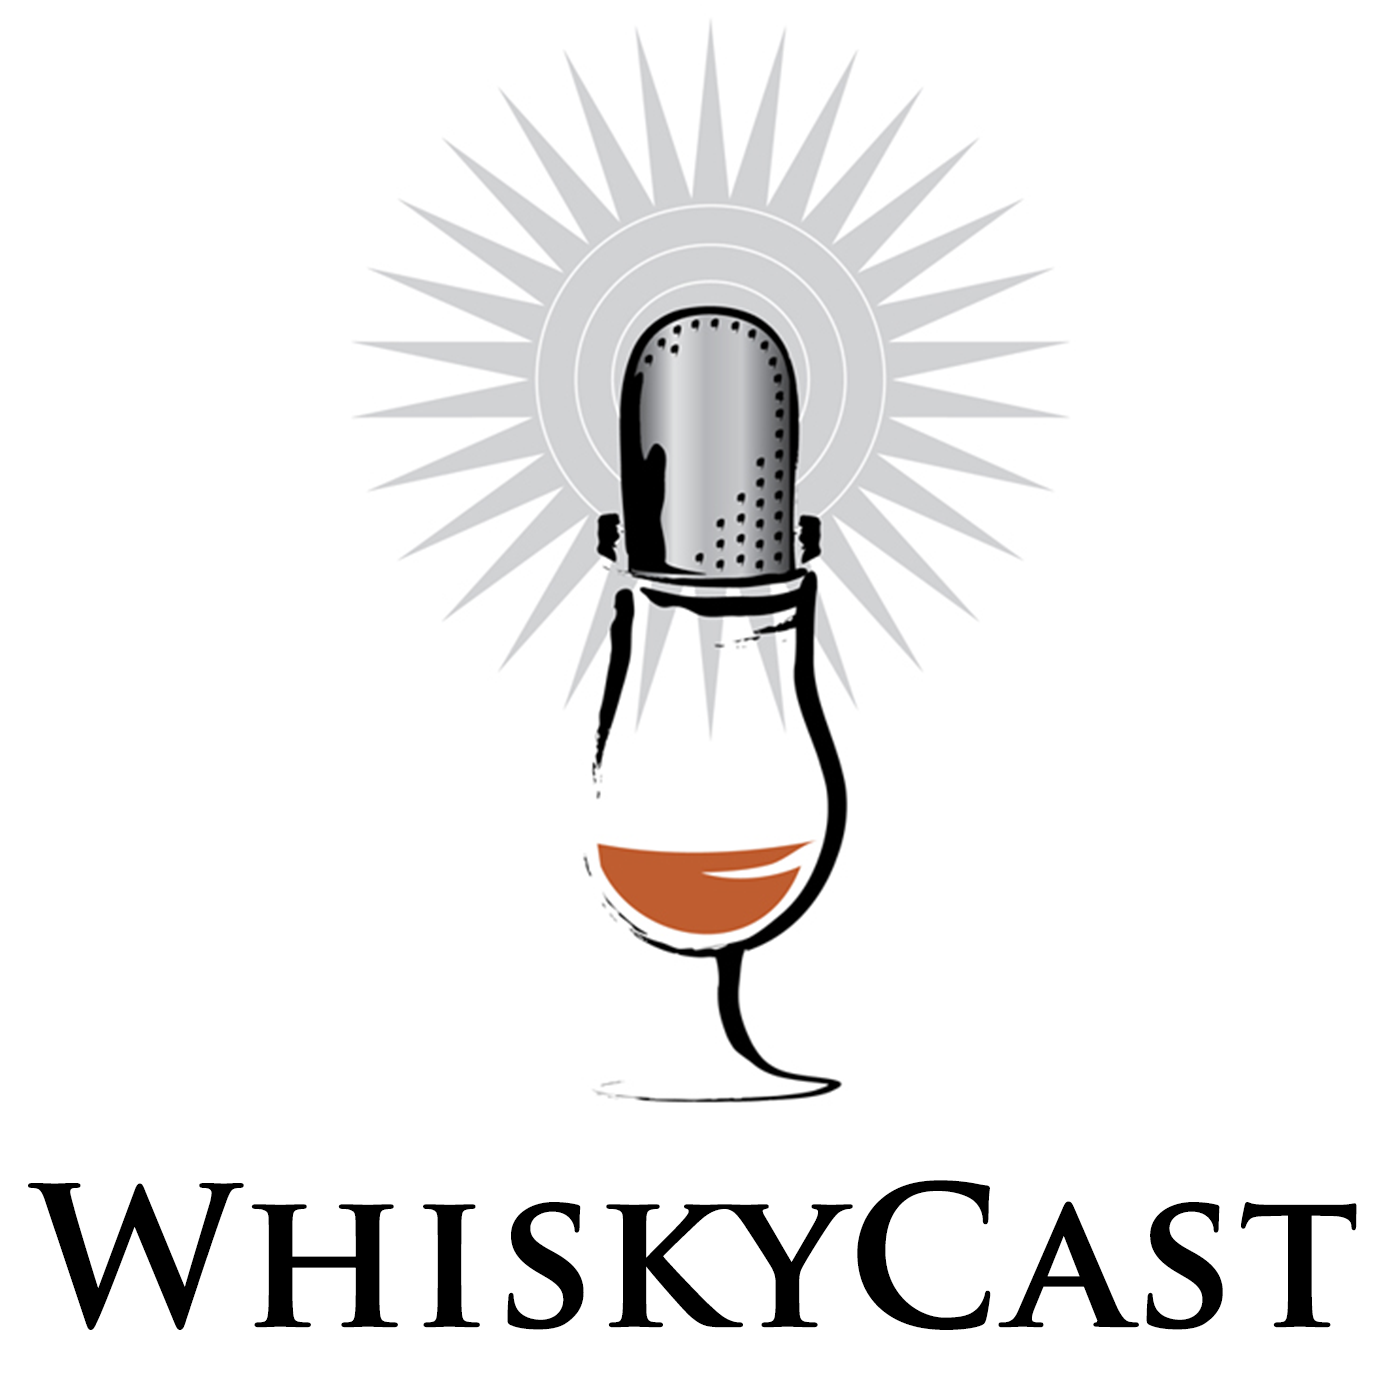 WhiskyCast Episode 457: December 21, 2013